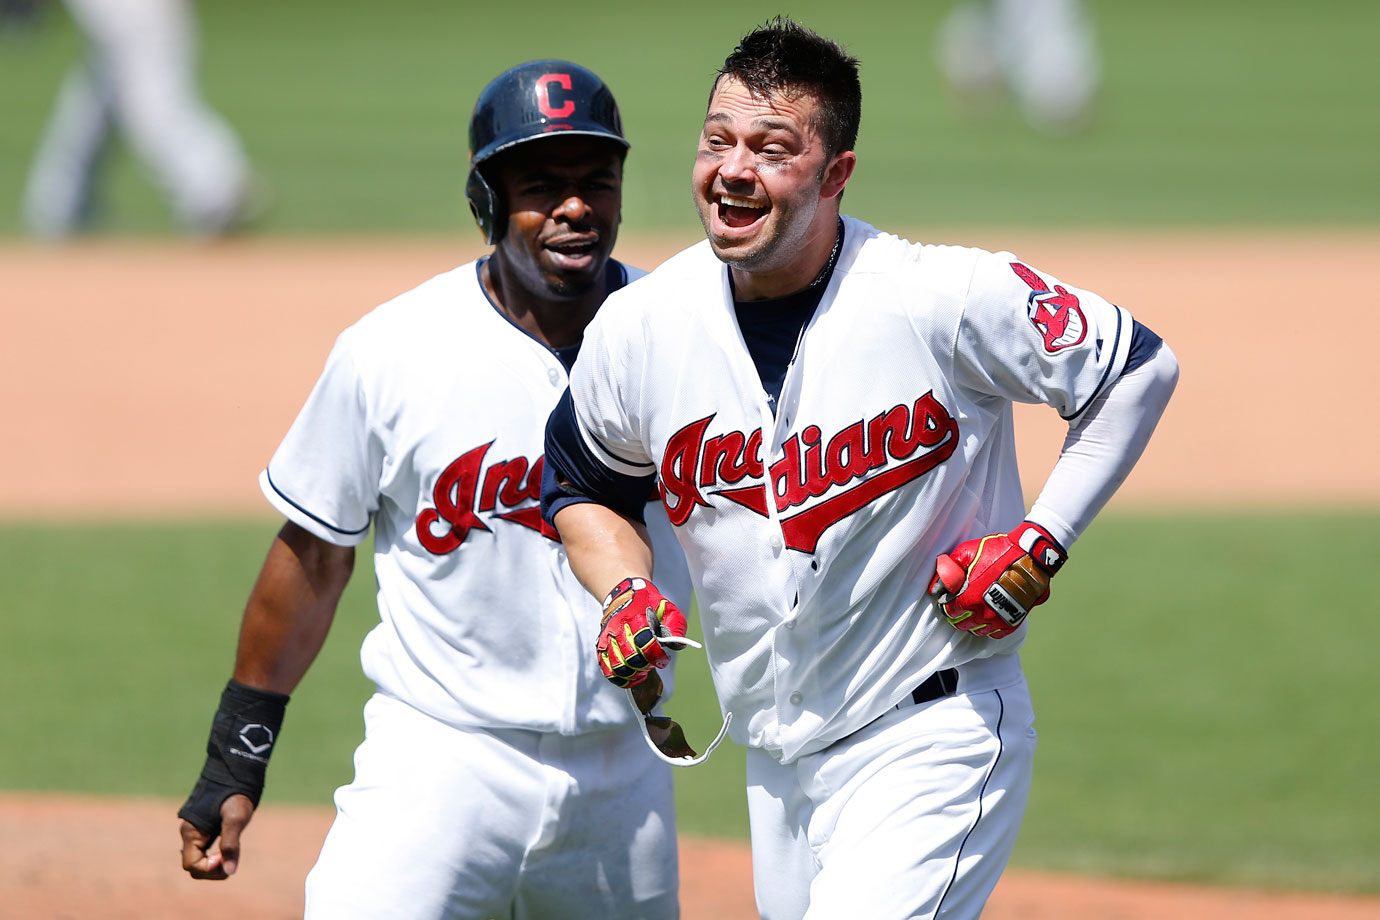 Highest salaries: Nick Swisher ($15,000,000), Michael Bourn ($13,500,000)